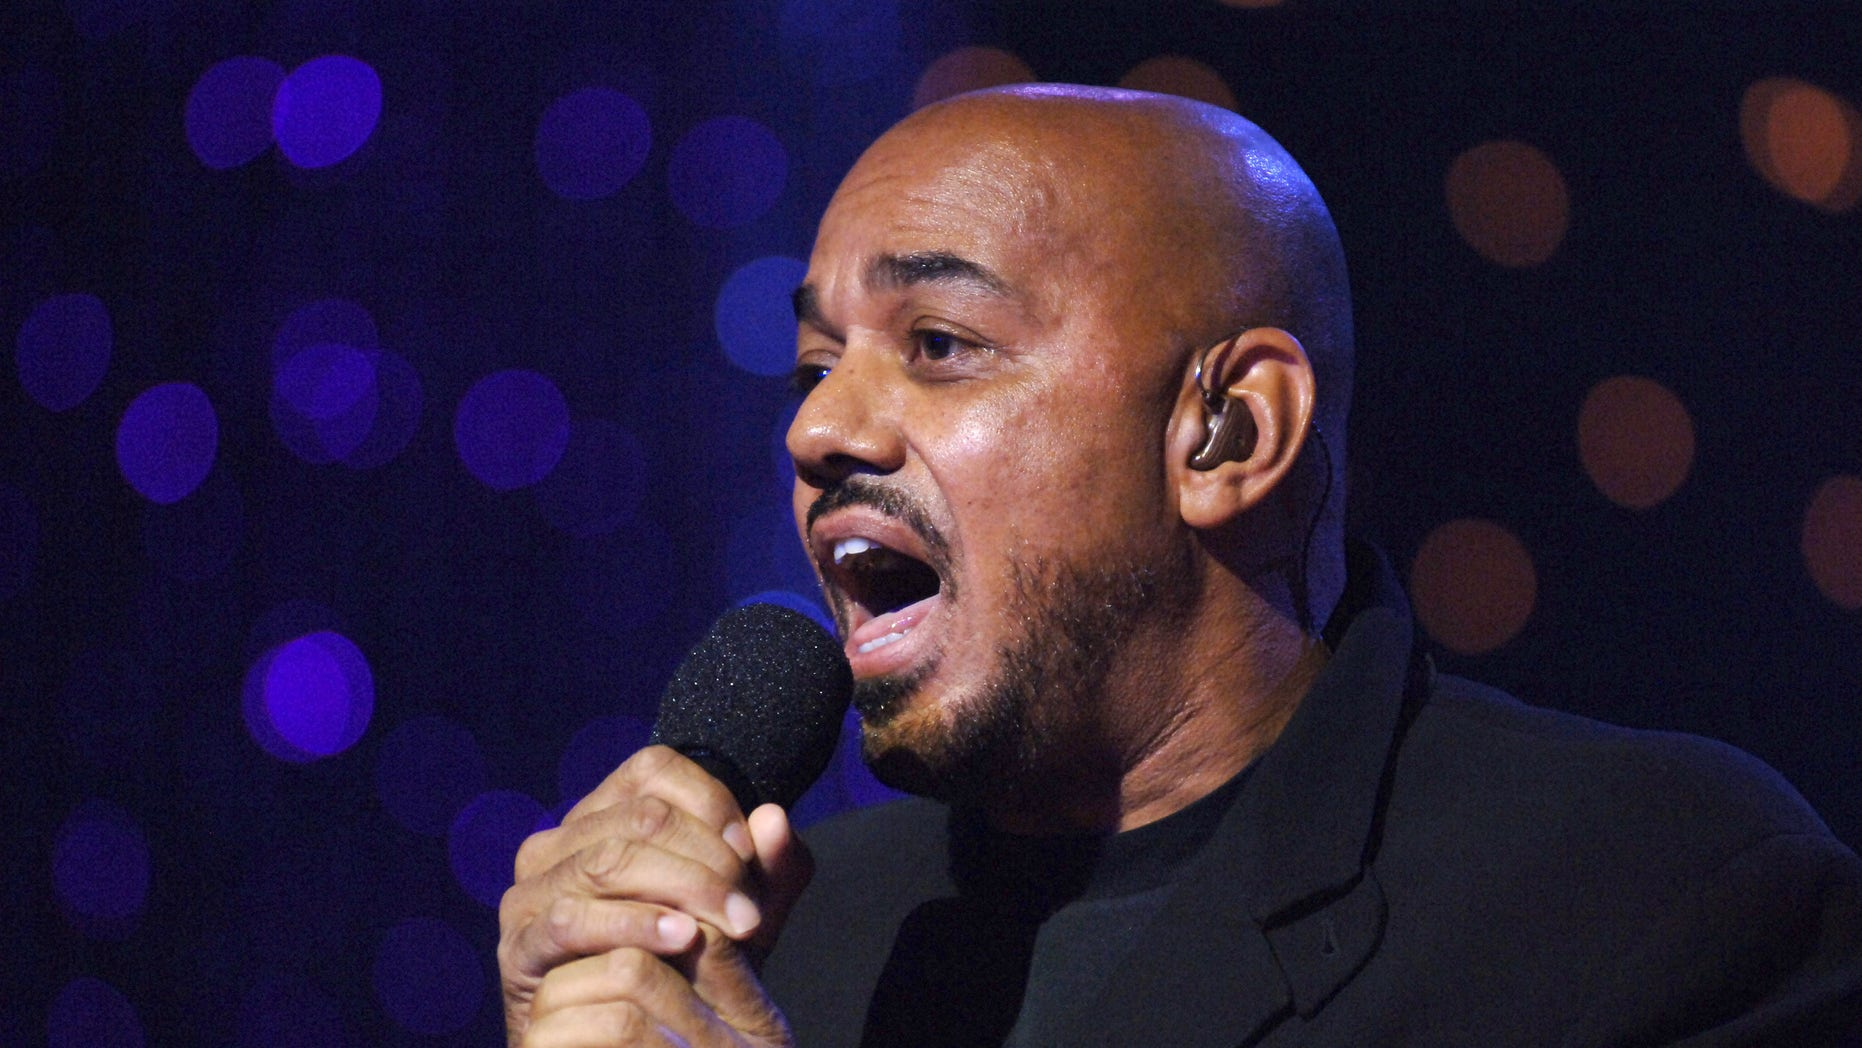 R&B singer, songwriter and producer James Ingram died on Tuesday, Jan. 29, 2019, his longtime friend Debbie Allen confirmed on Twitter.